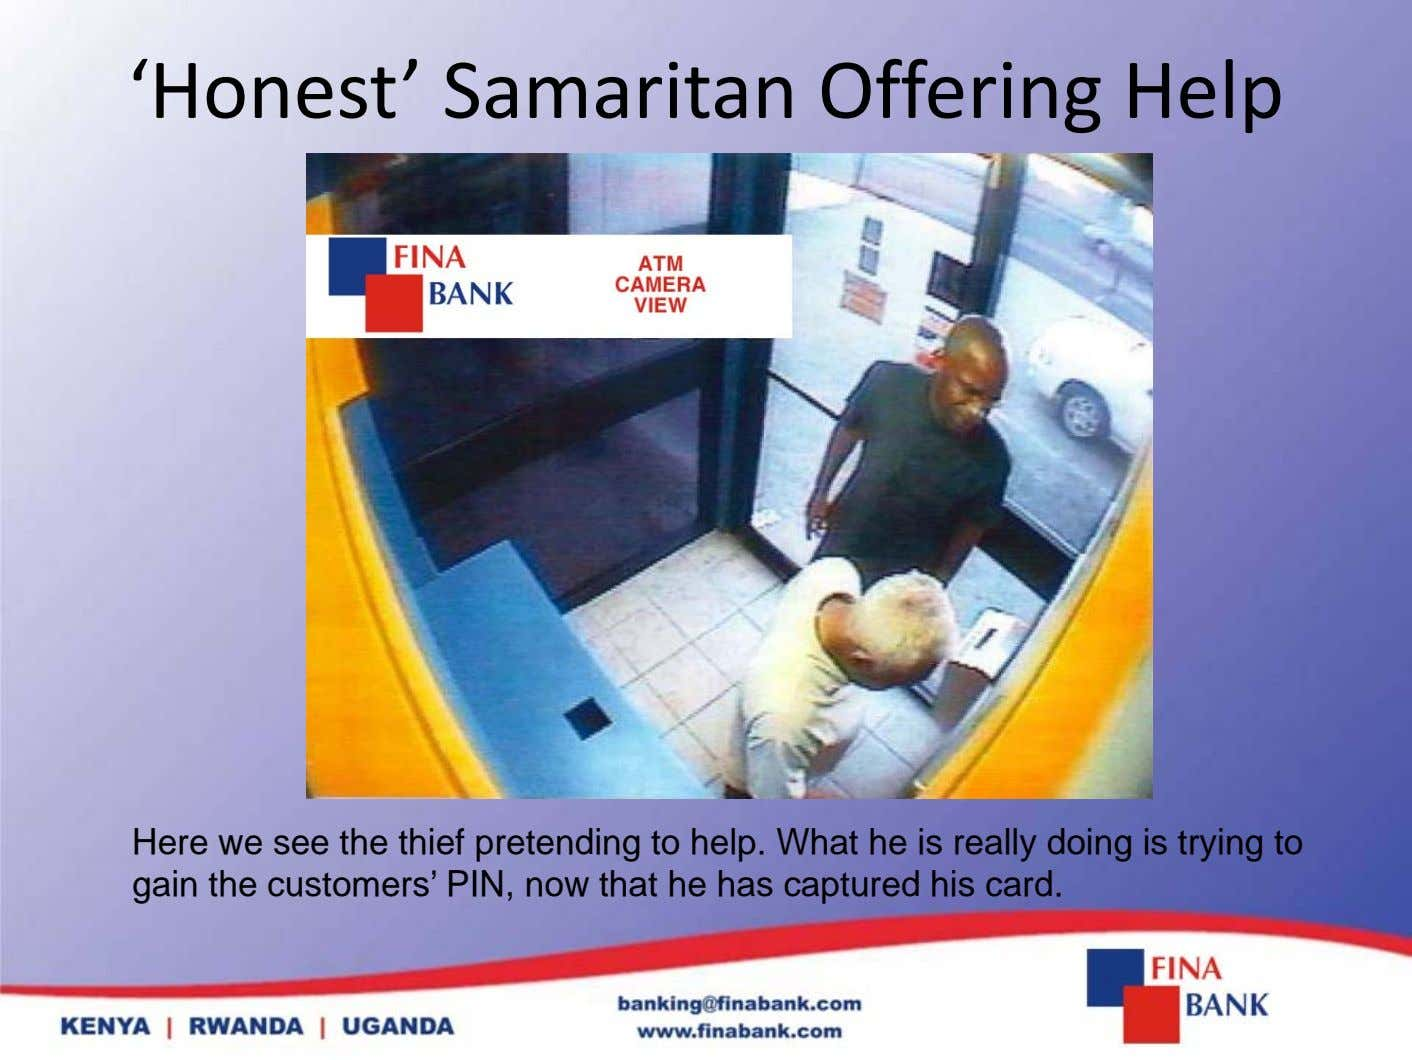 'Honest' Samaritan Offering Help Here we see the thief pretending to help. What he is